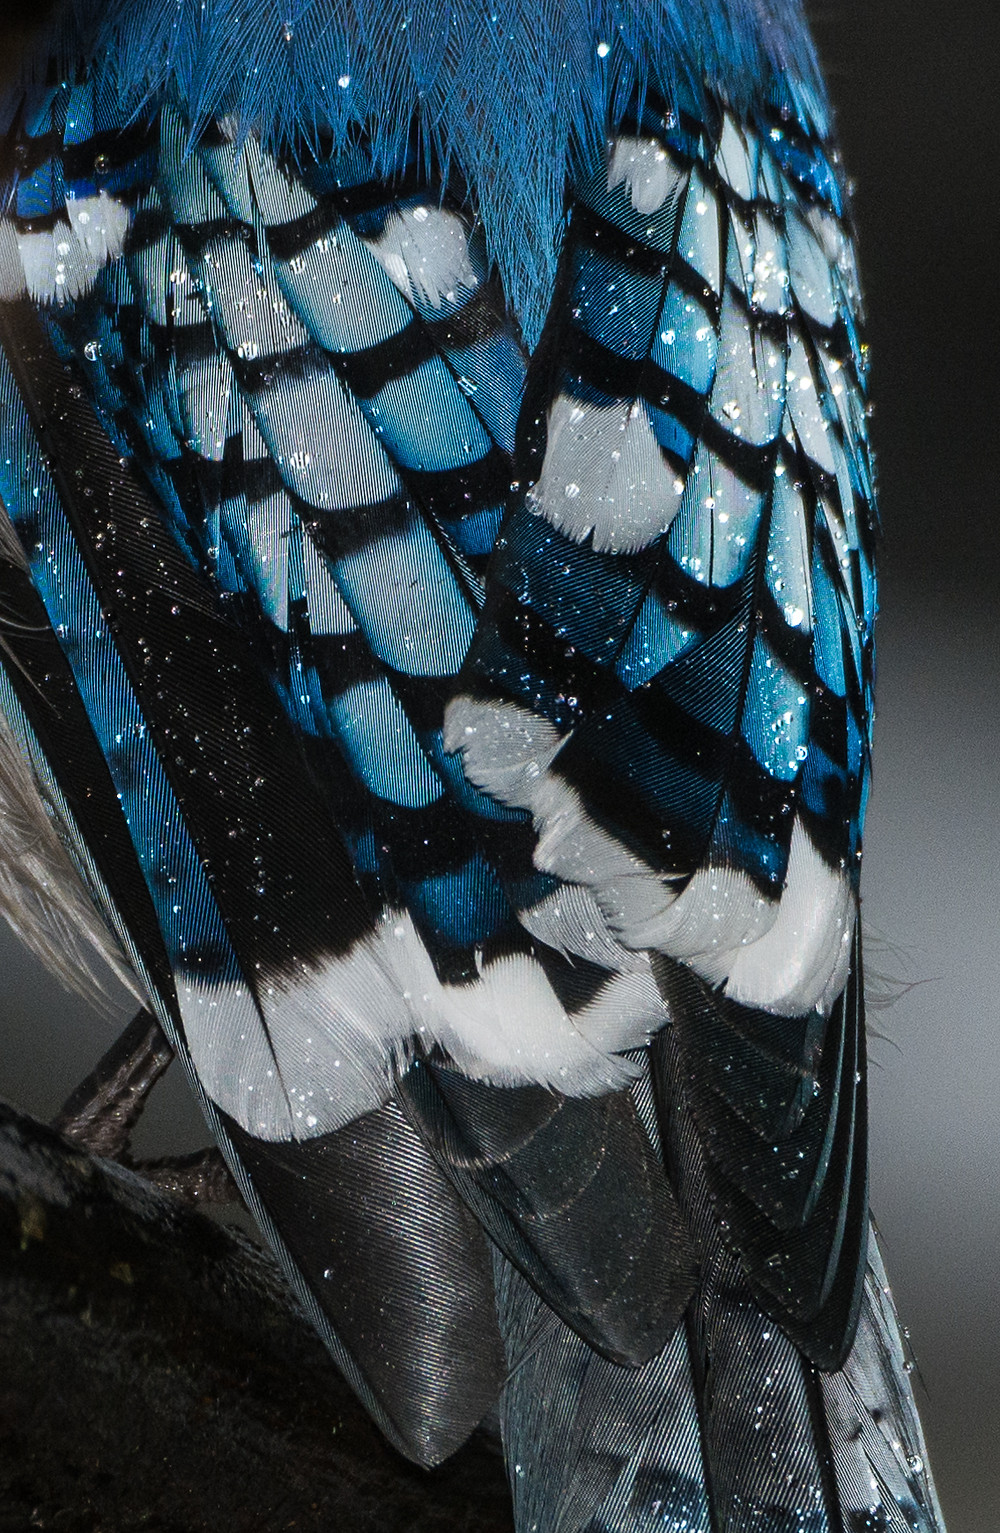 Blue Jay feathers in rain